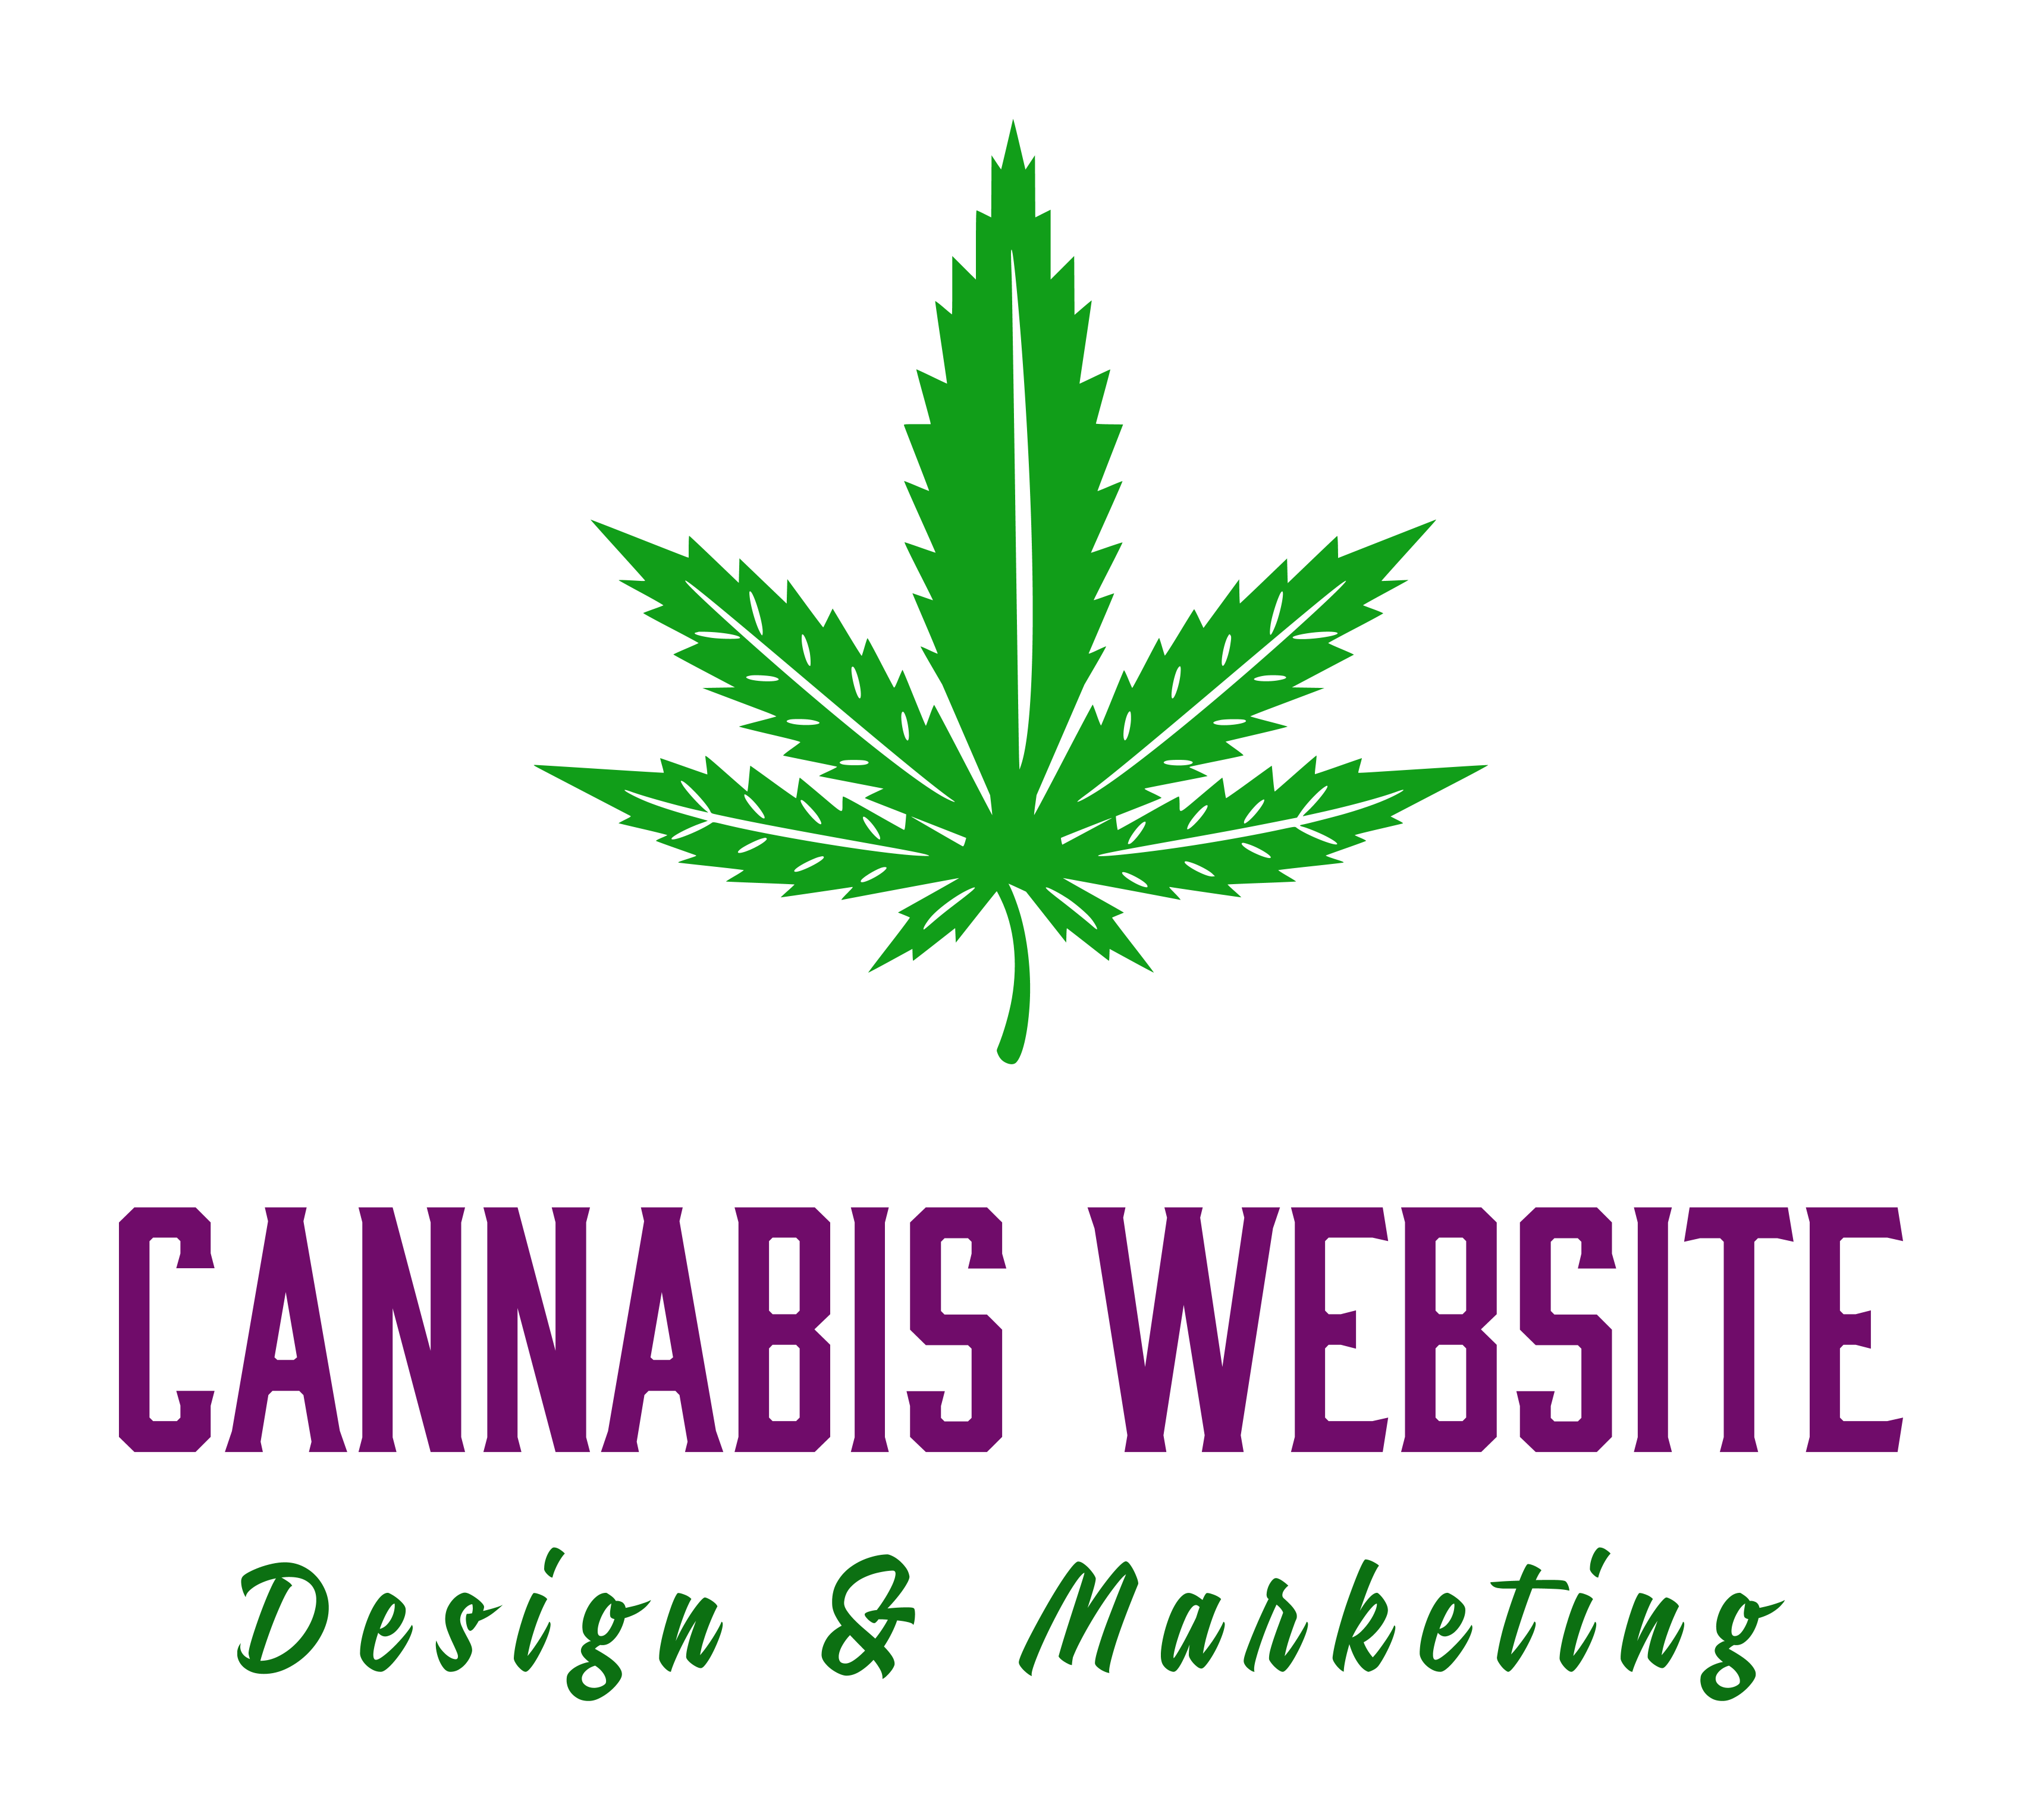 Cannabis Website Design & Marketing